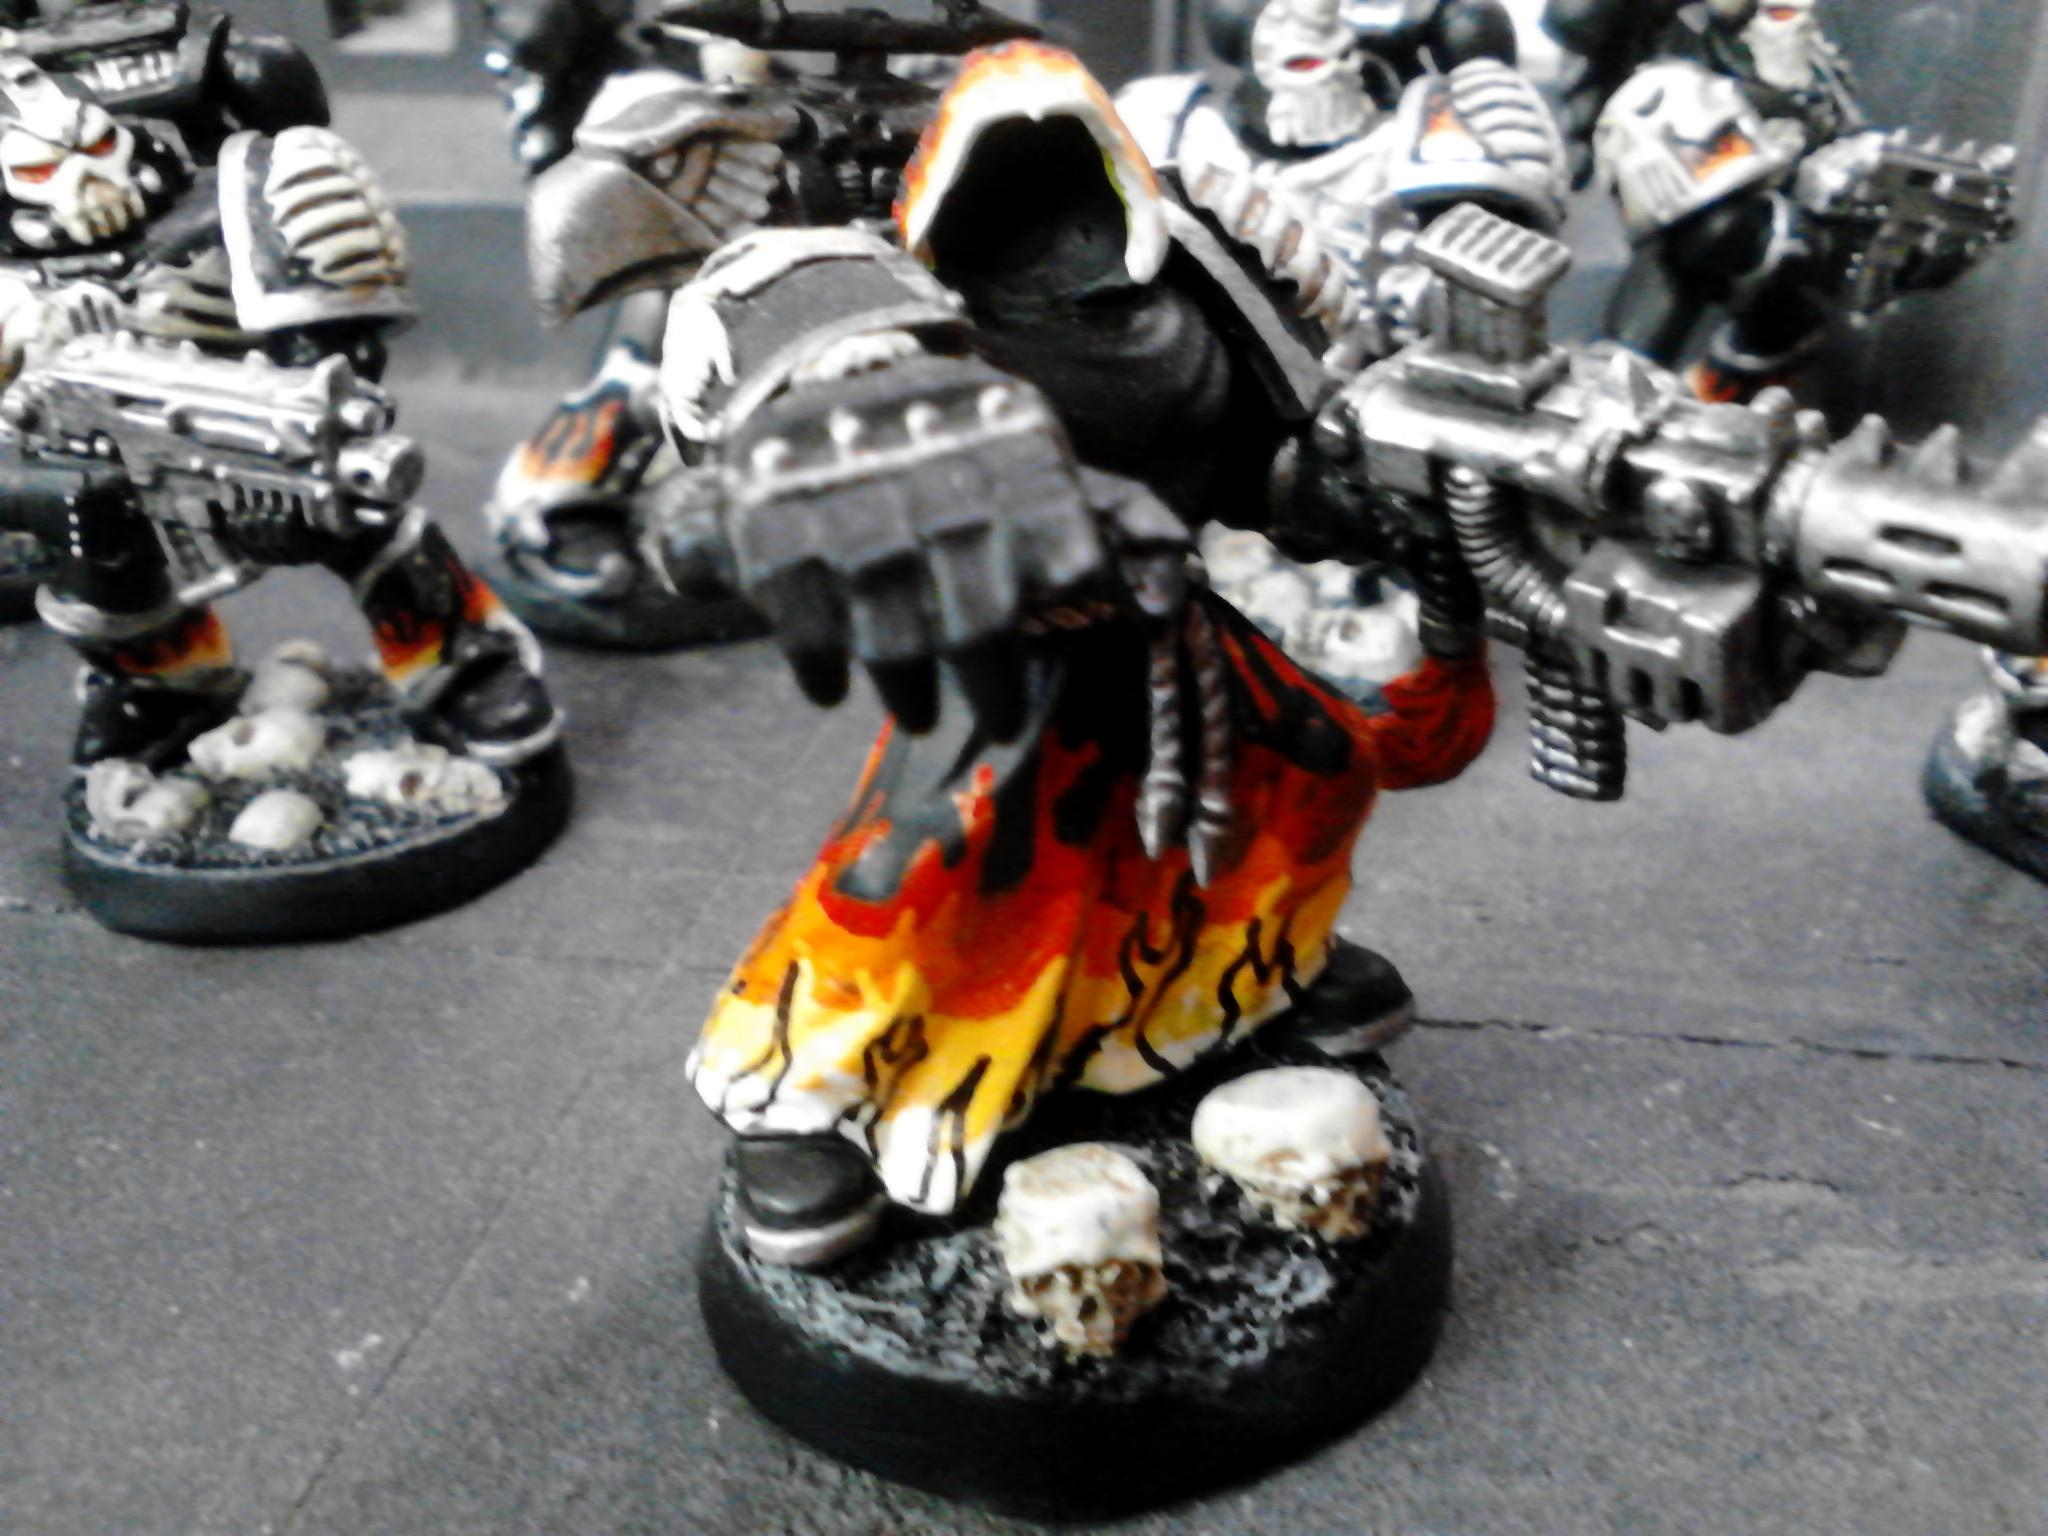 Budget, Combi Melta, Fire, Flames, Legion Of The Damned, Power Fist, Sergeant, Skull